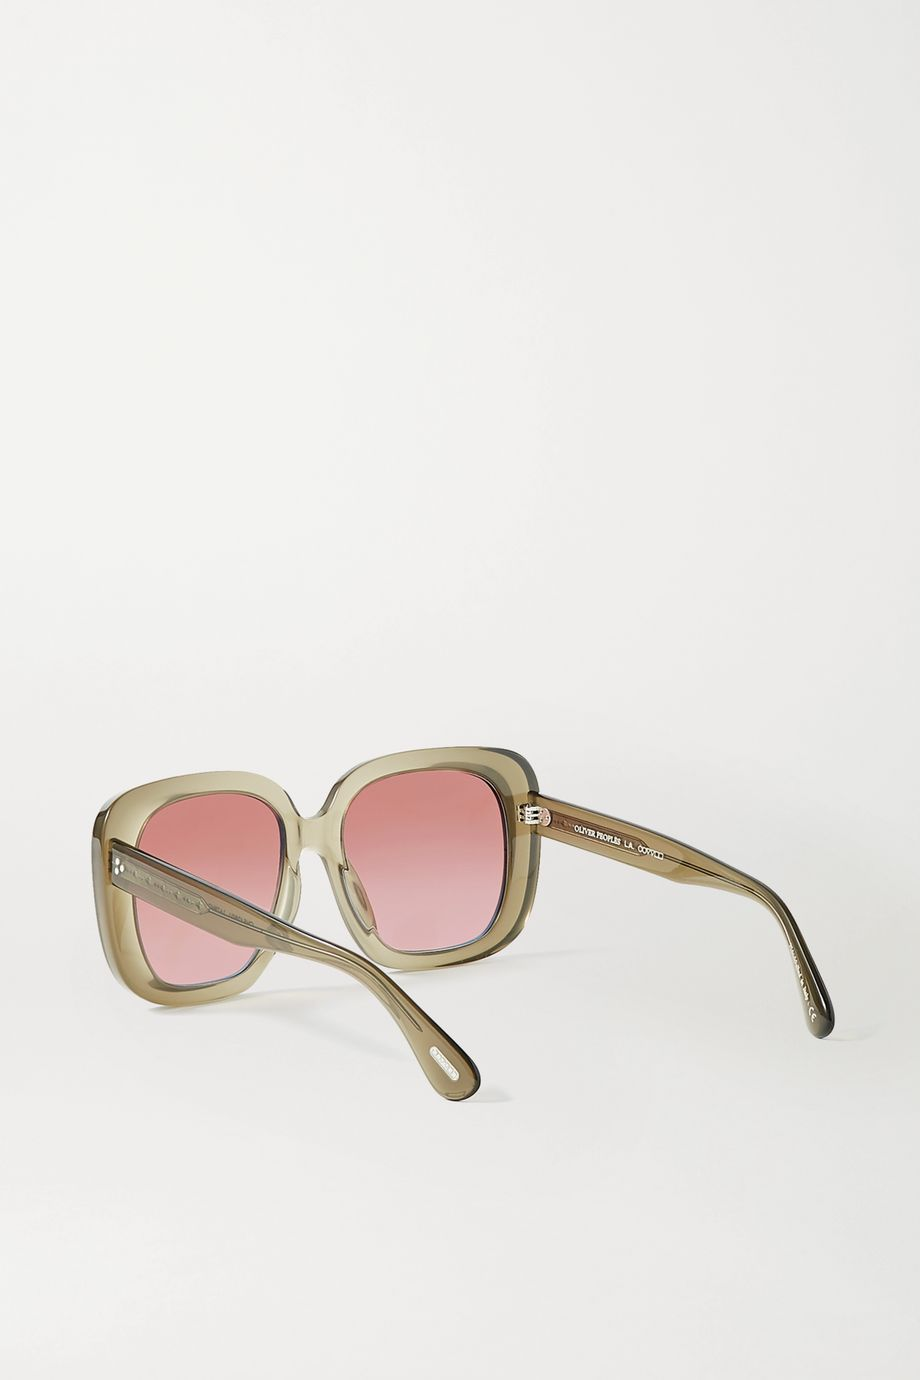 Oliver Peoples Nella oversized square-frame acetate sunglasses